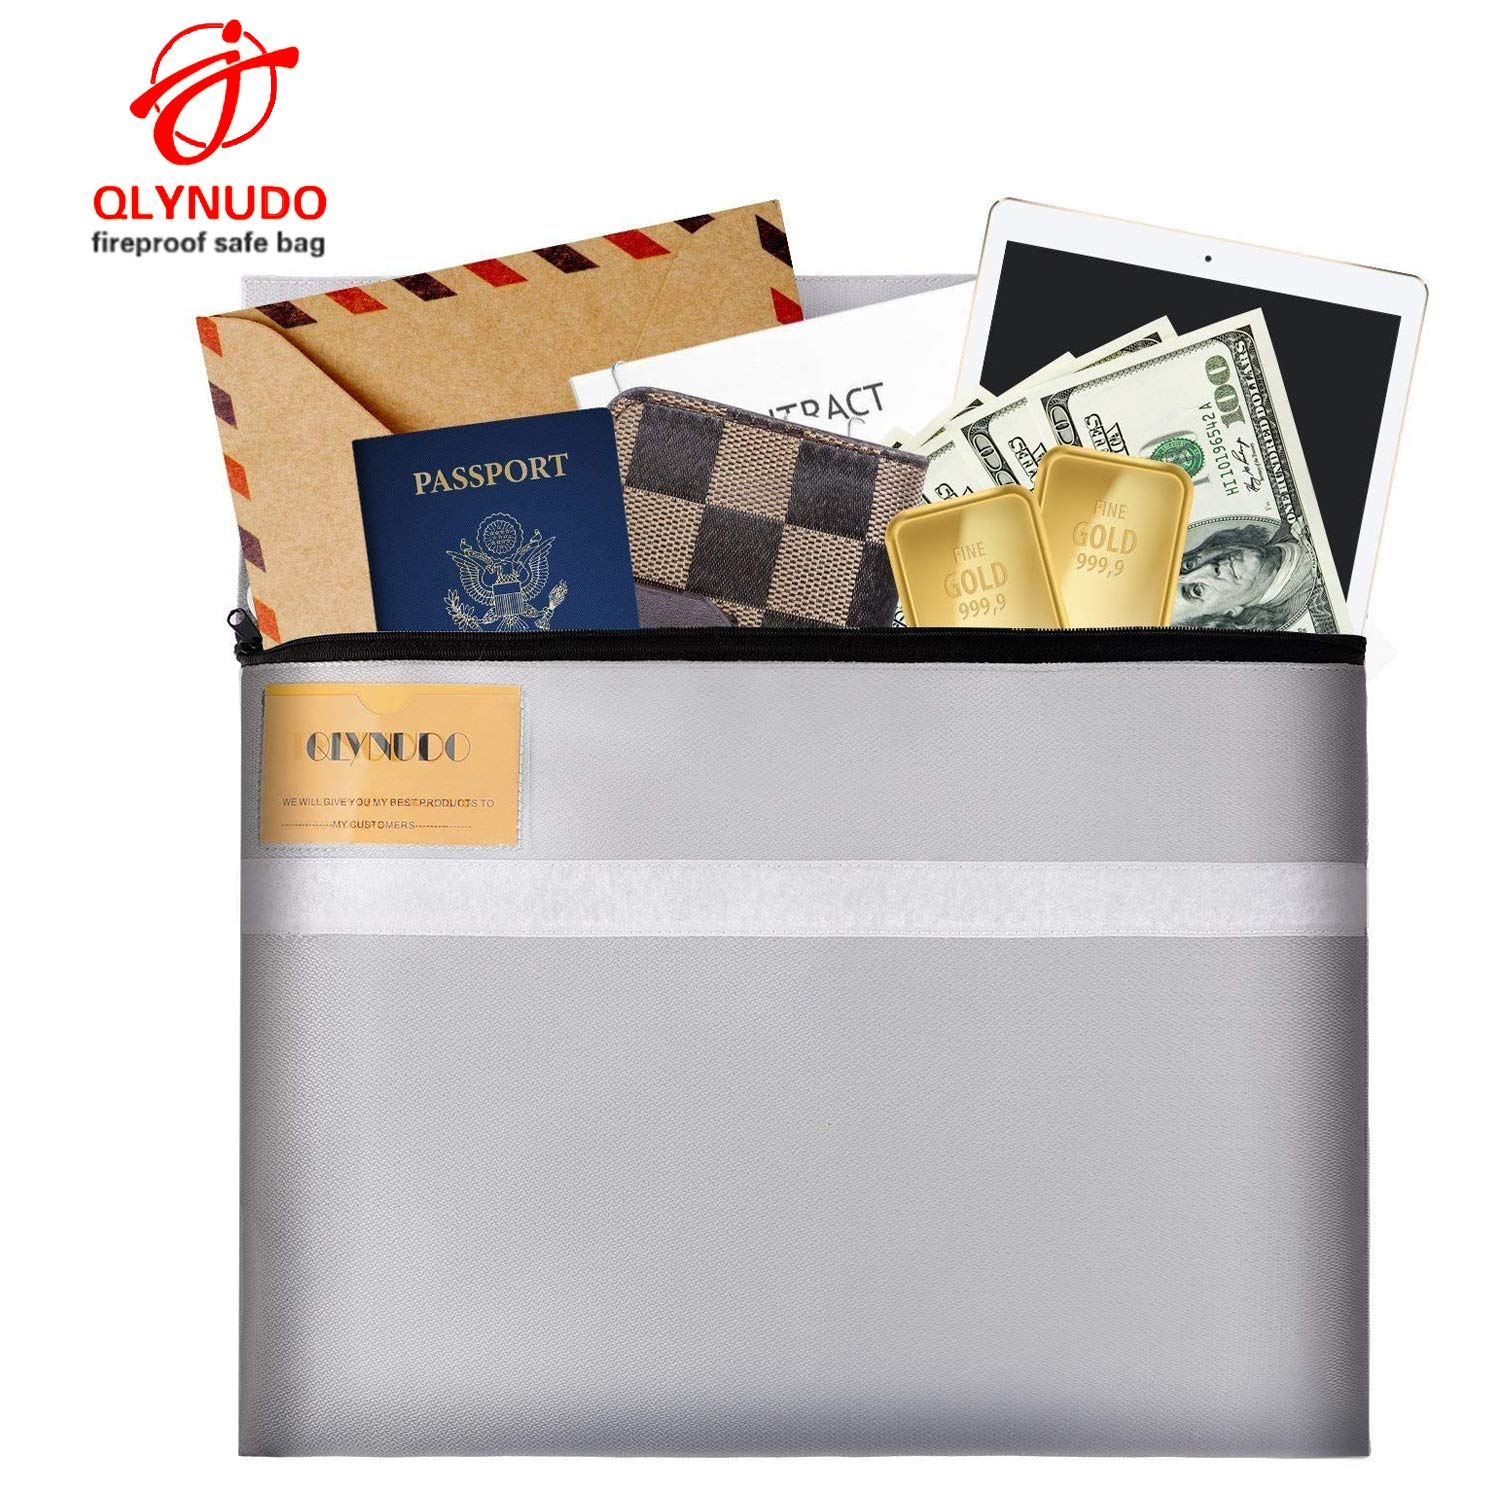 Fireproof Document Bag, fire Proof Safe Bag No Itchy Silicone Coated fire Resistant Money File Storage bag15.5X12.5 in